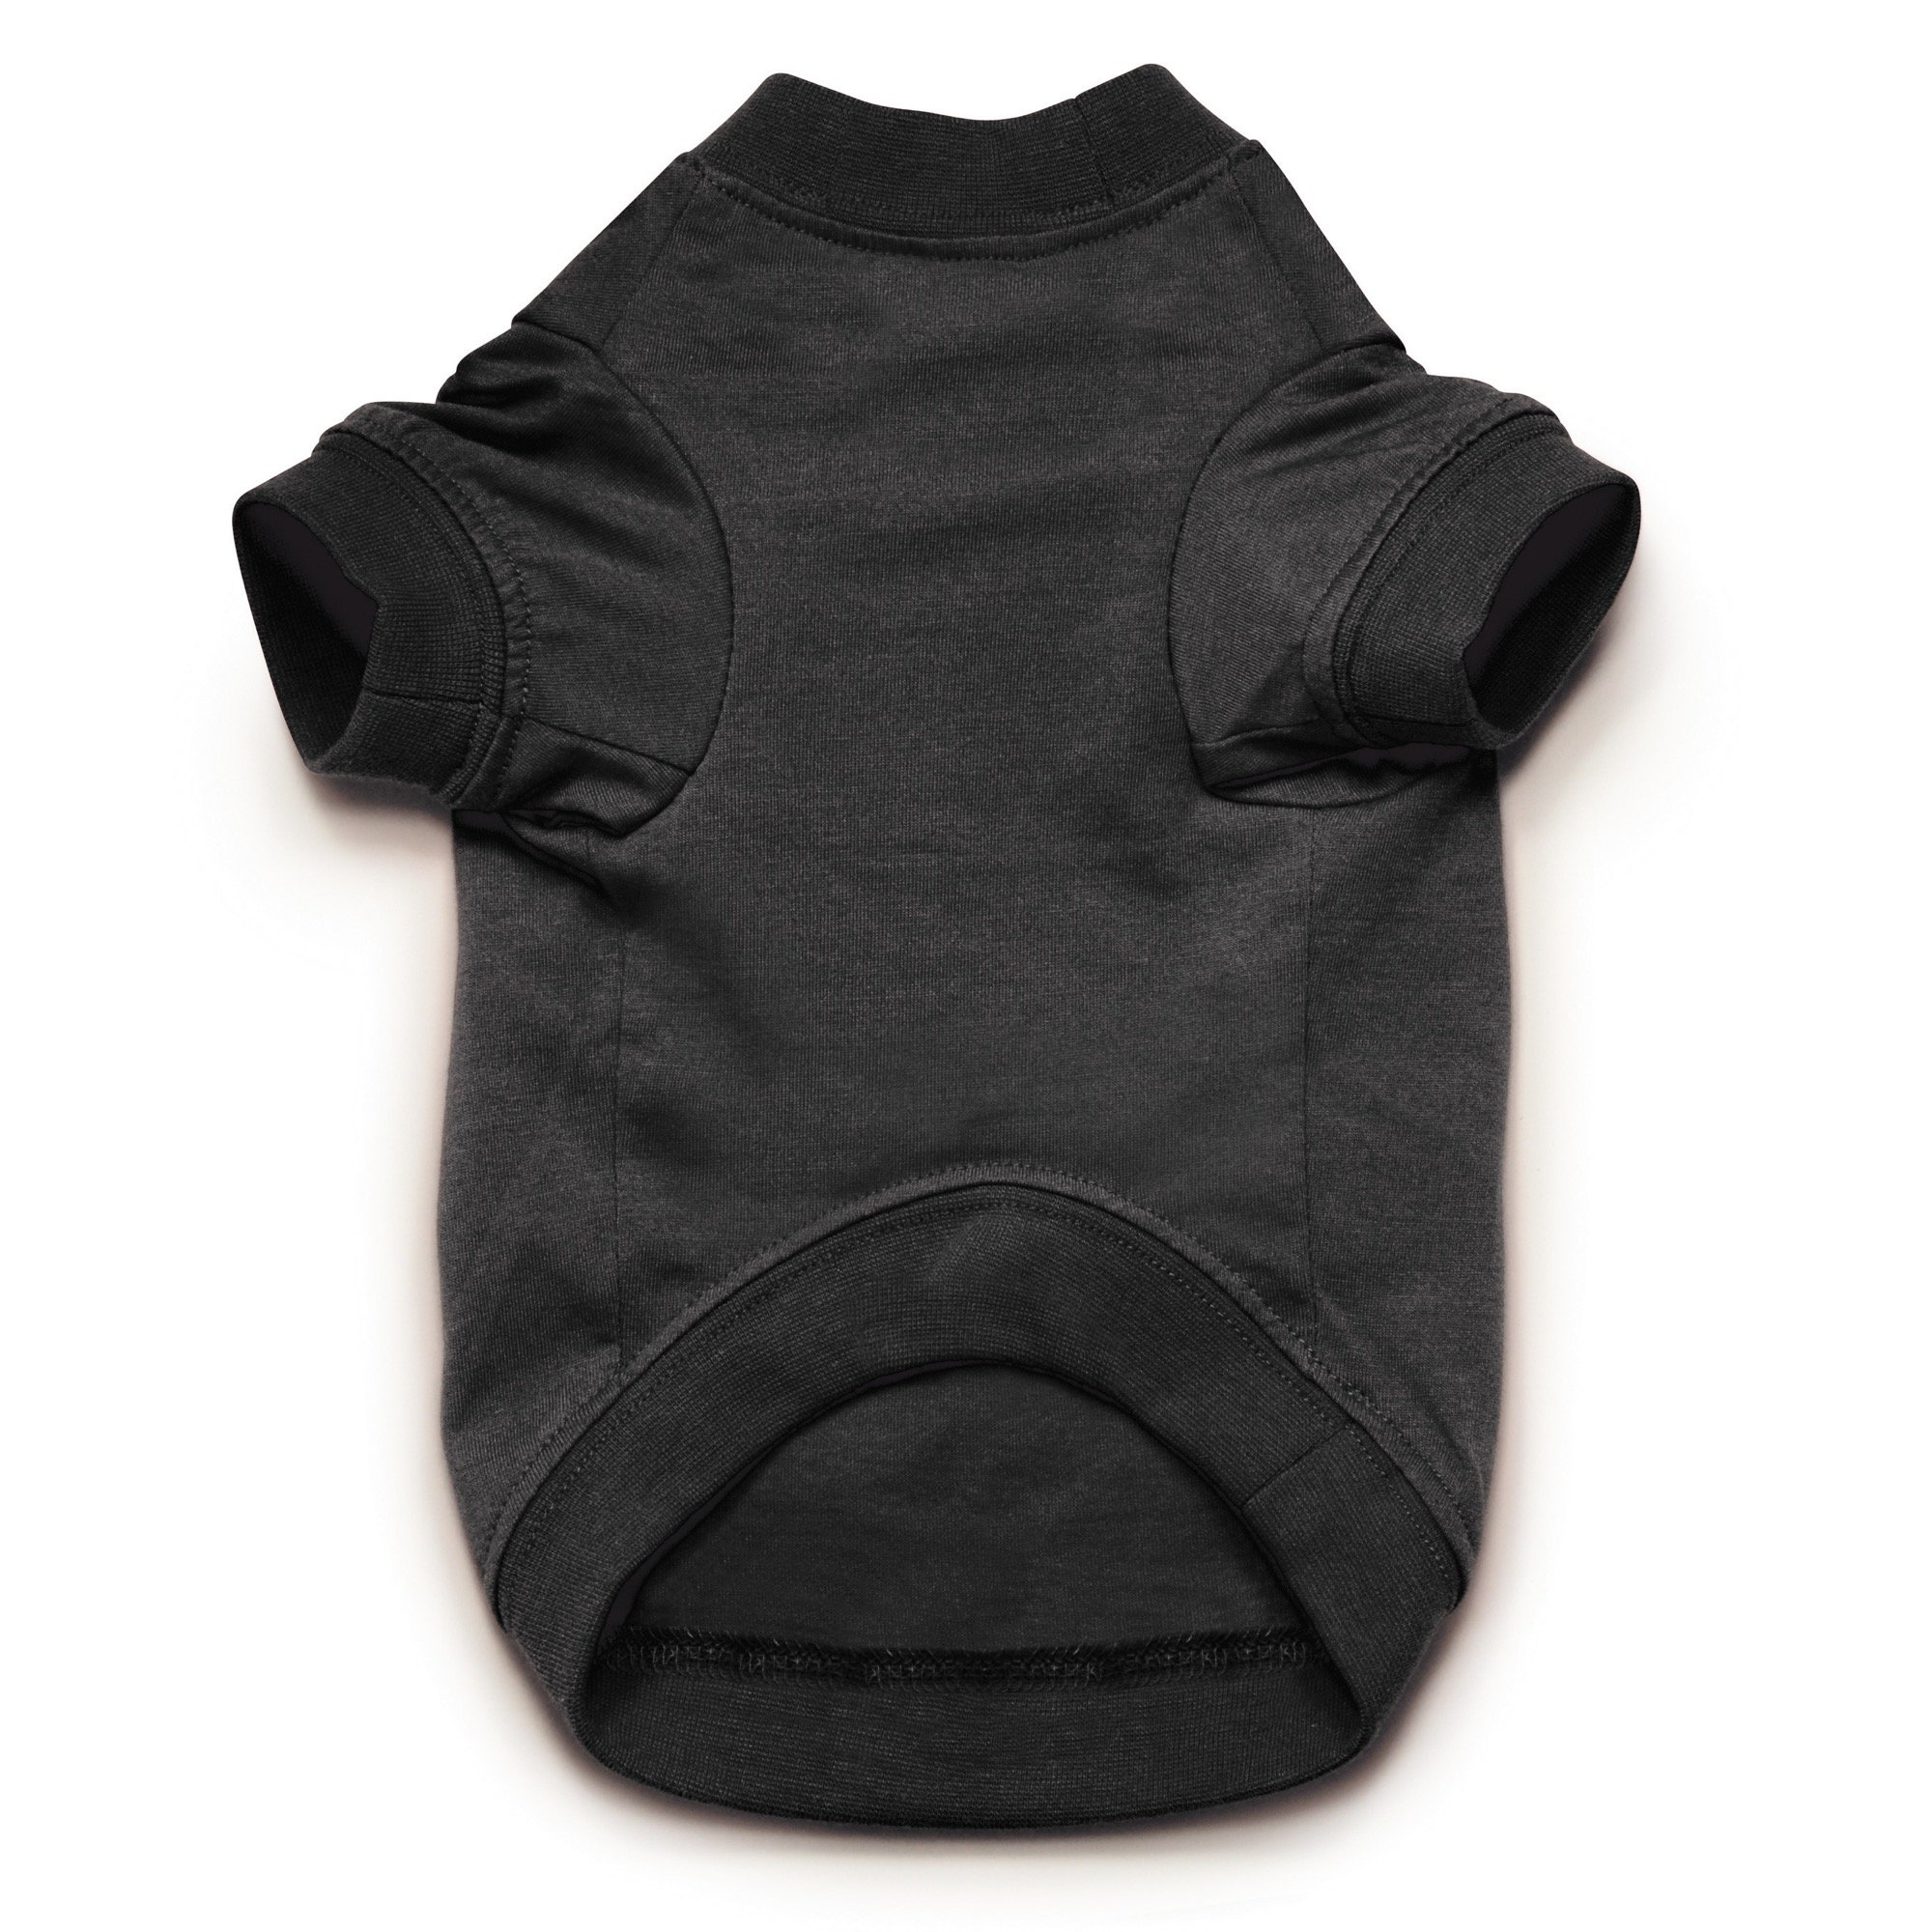 Zack & Zoey Basic Tee Shirt for Dogs, 20'' Large, Black by Zack & Zoey (Image #3)